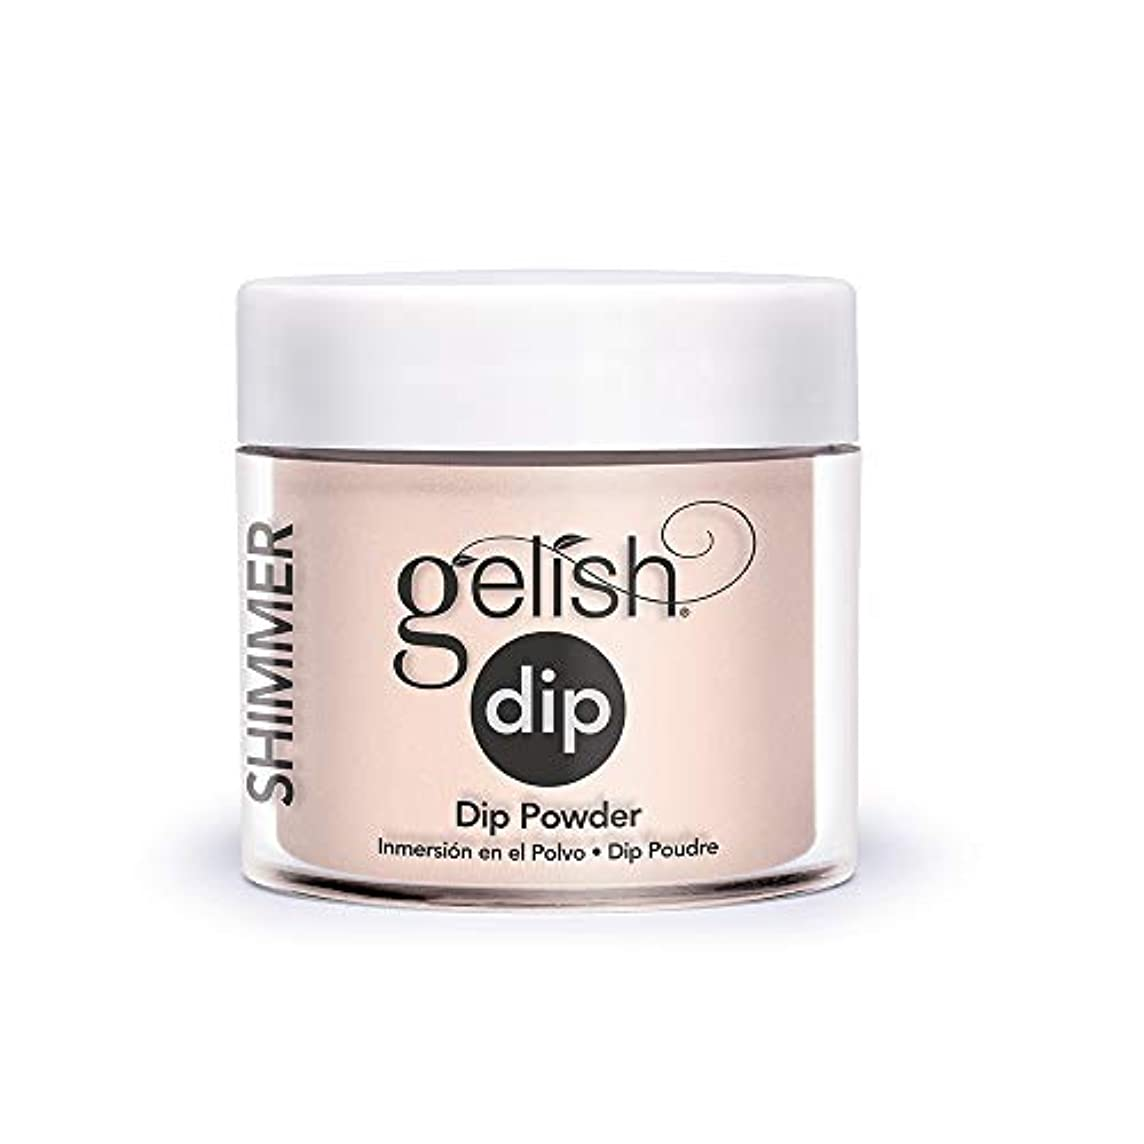 コークス疑問に思う慣性Harmony Gelish - Acrylic Dip Powder - Heaven Sent - 23g / 0.8oz